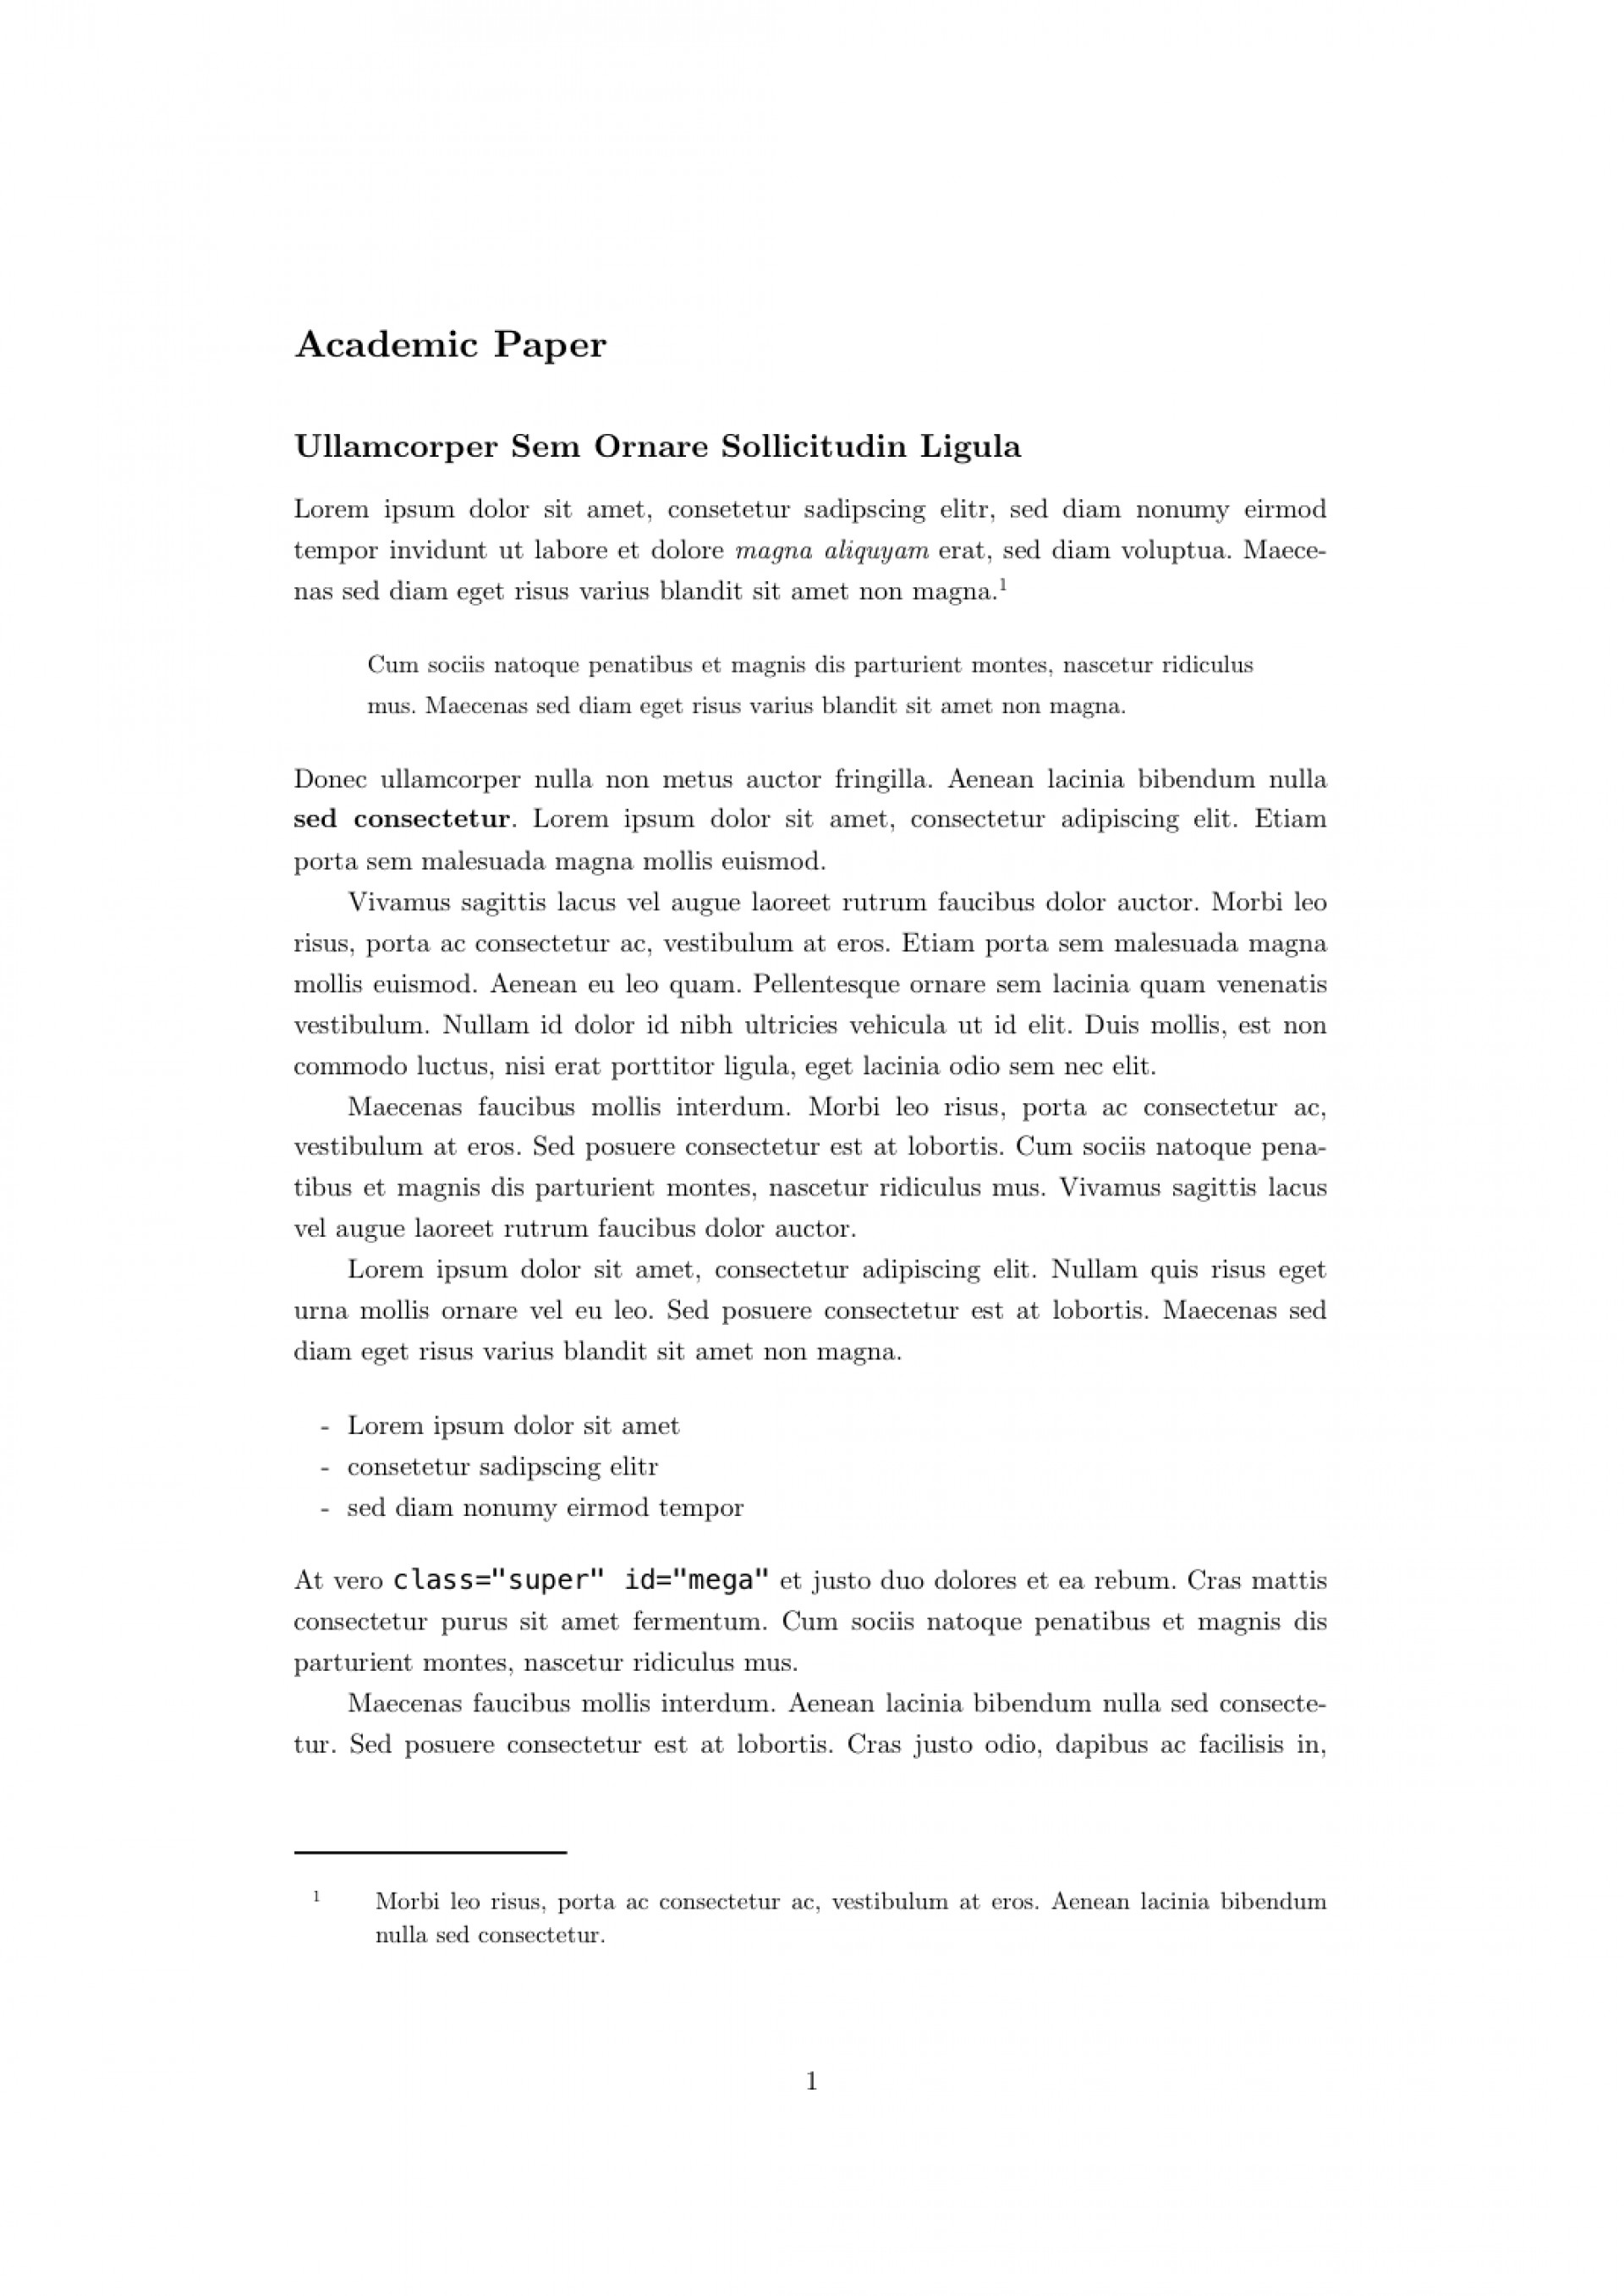 002 Academic Style Essay Example Fascinating Guide Sample 1920